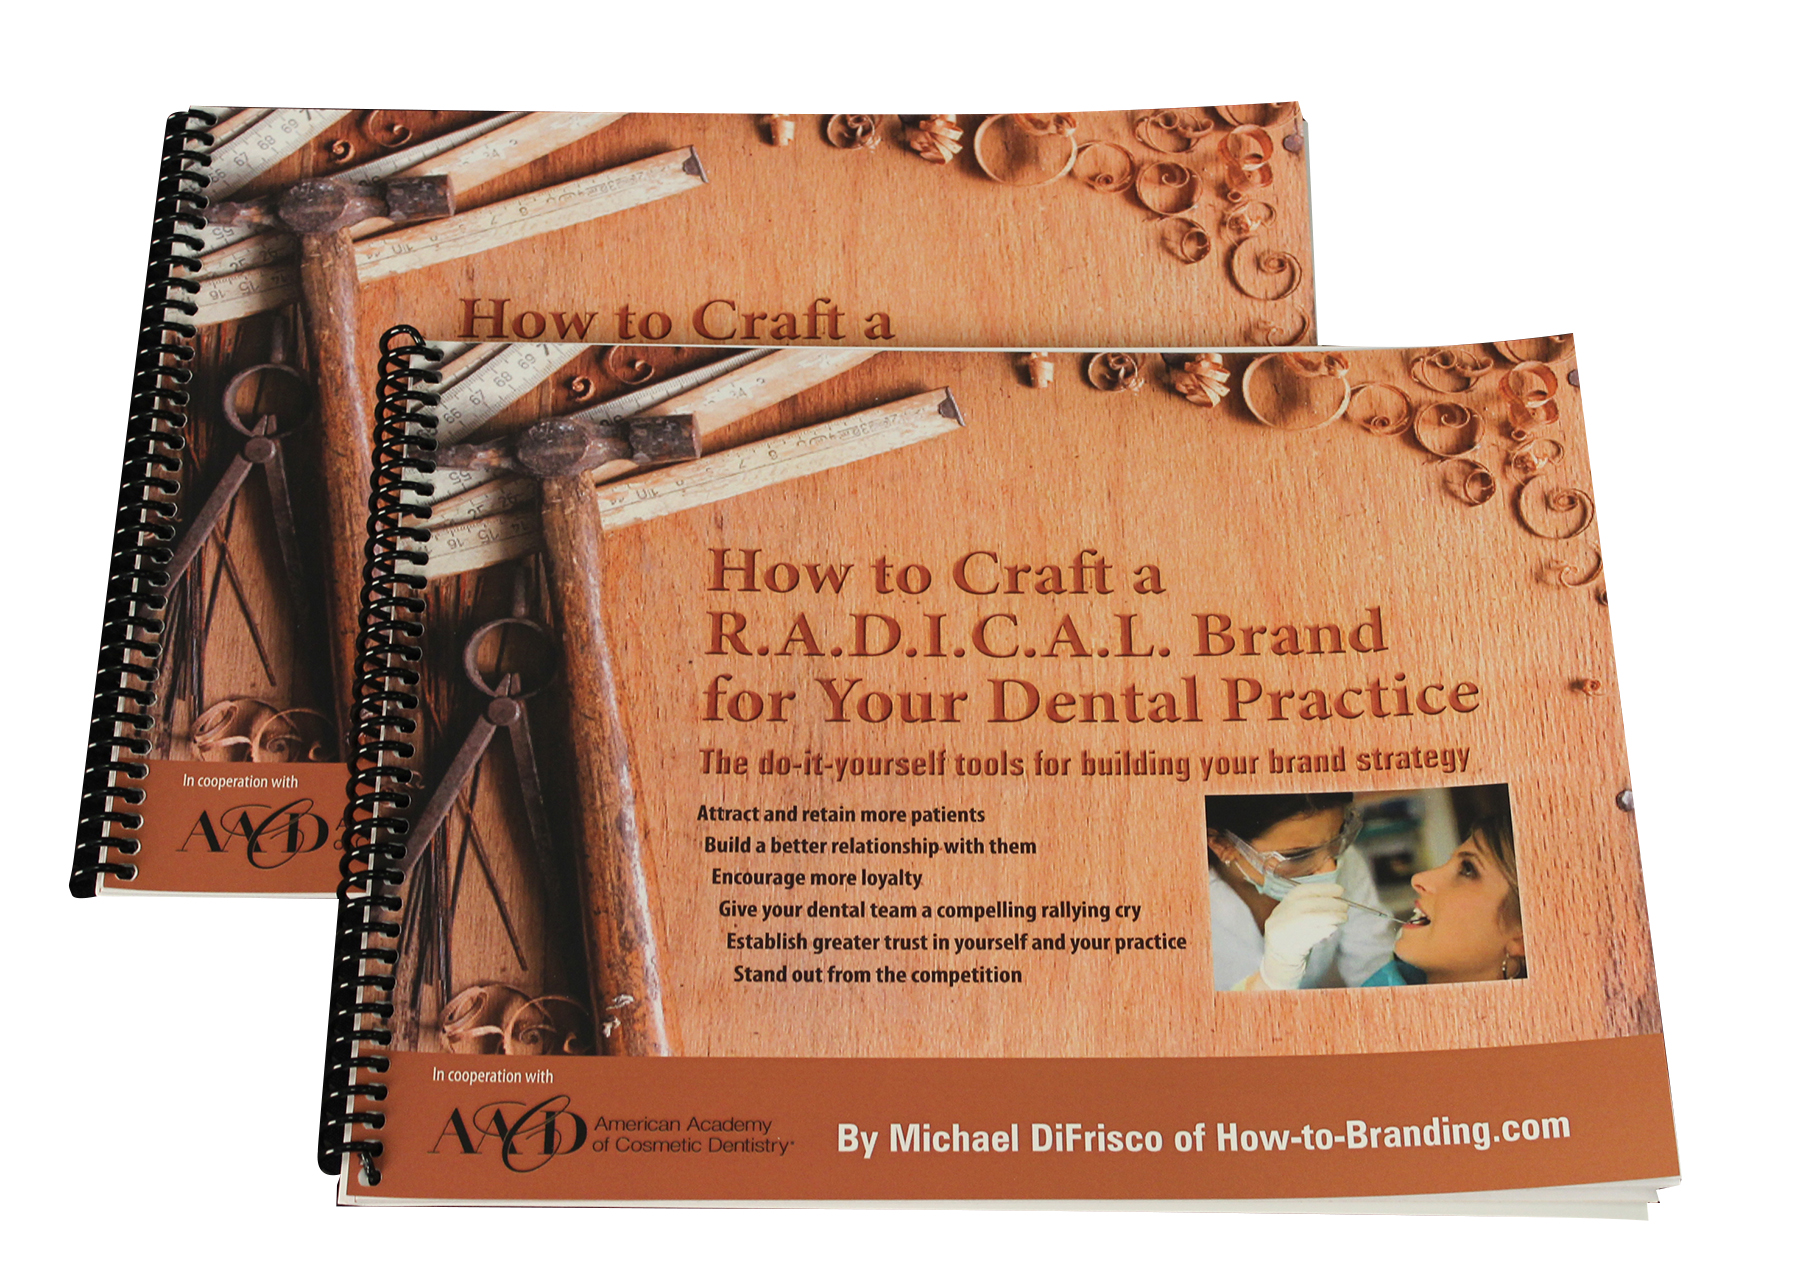 How to Craft a R.A.D.I.C.A.L. Brand for your Dental Practice The do-it-yourself manual for building your dental brand strategy